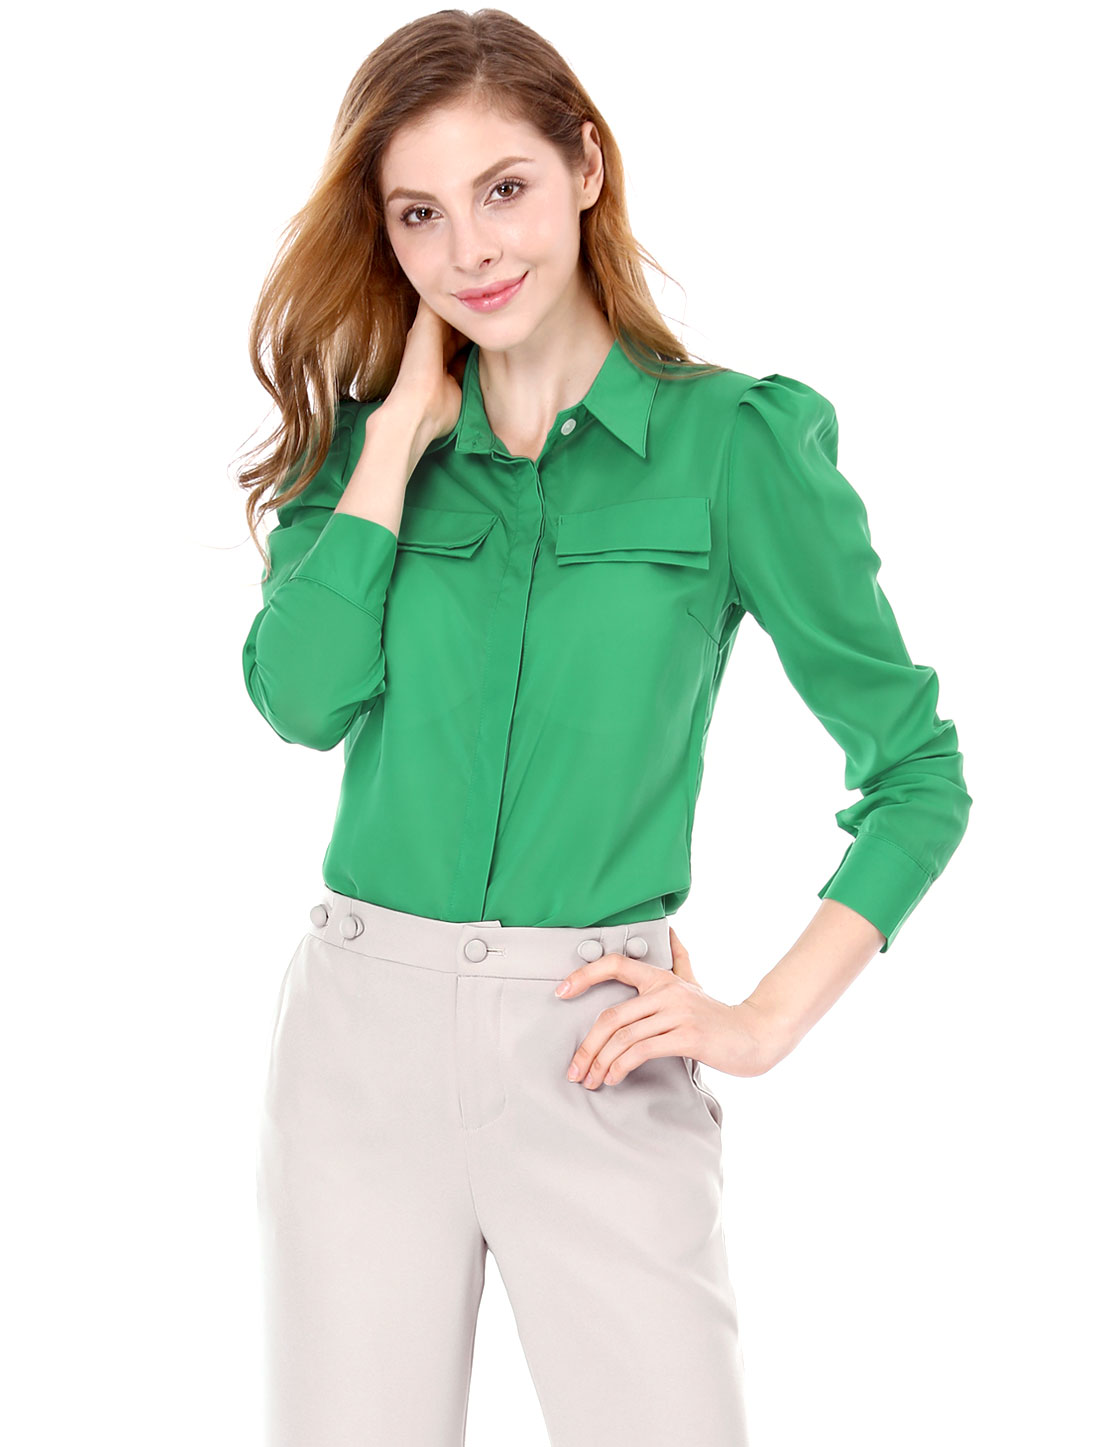 Single-Breasted Front Solid Color Fake Chest Pockets Blouse for Lady L